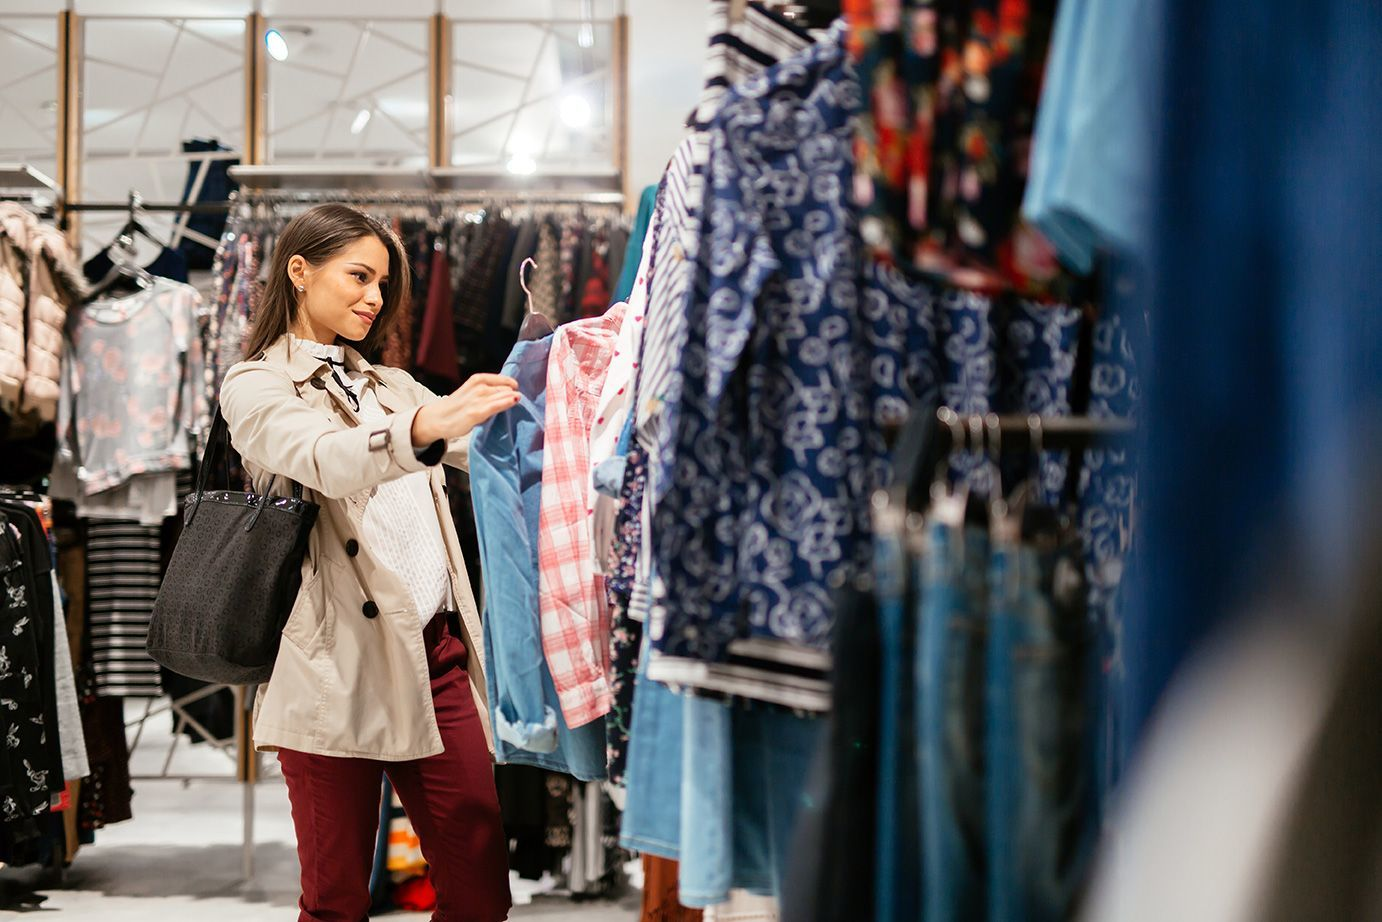 Woman looking at clothes in store